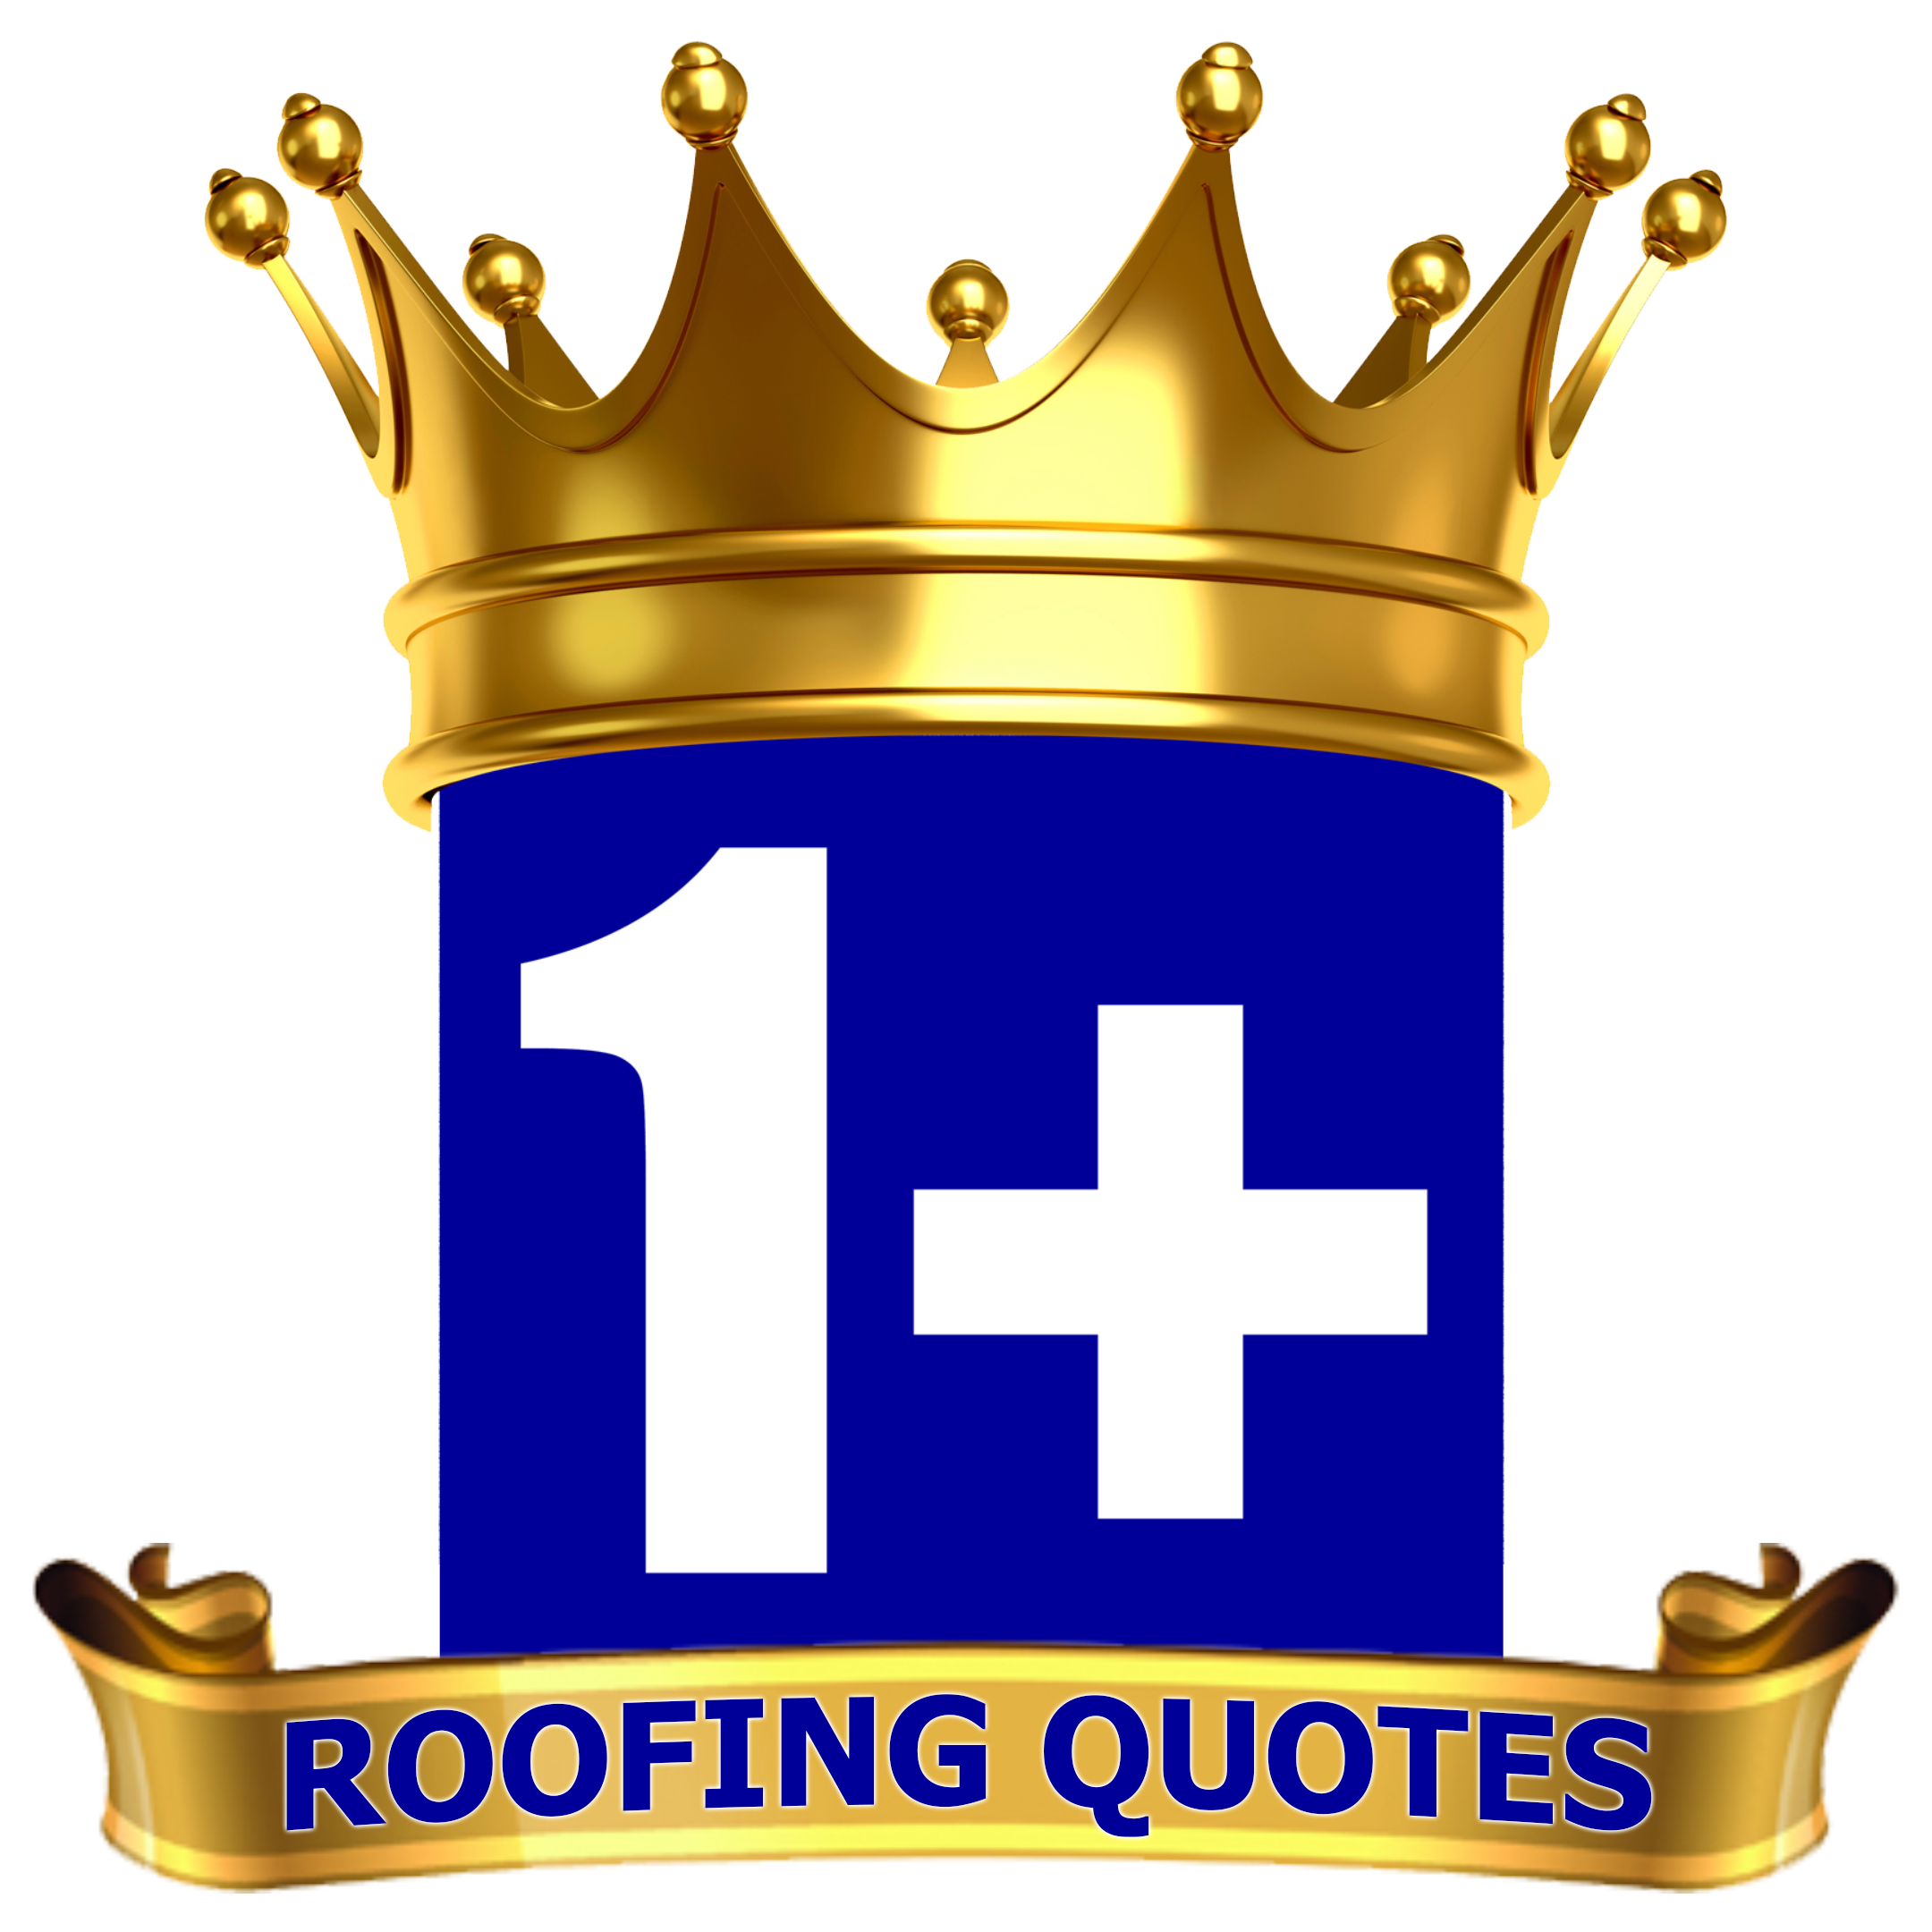 1+ ROOFING QUOTES